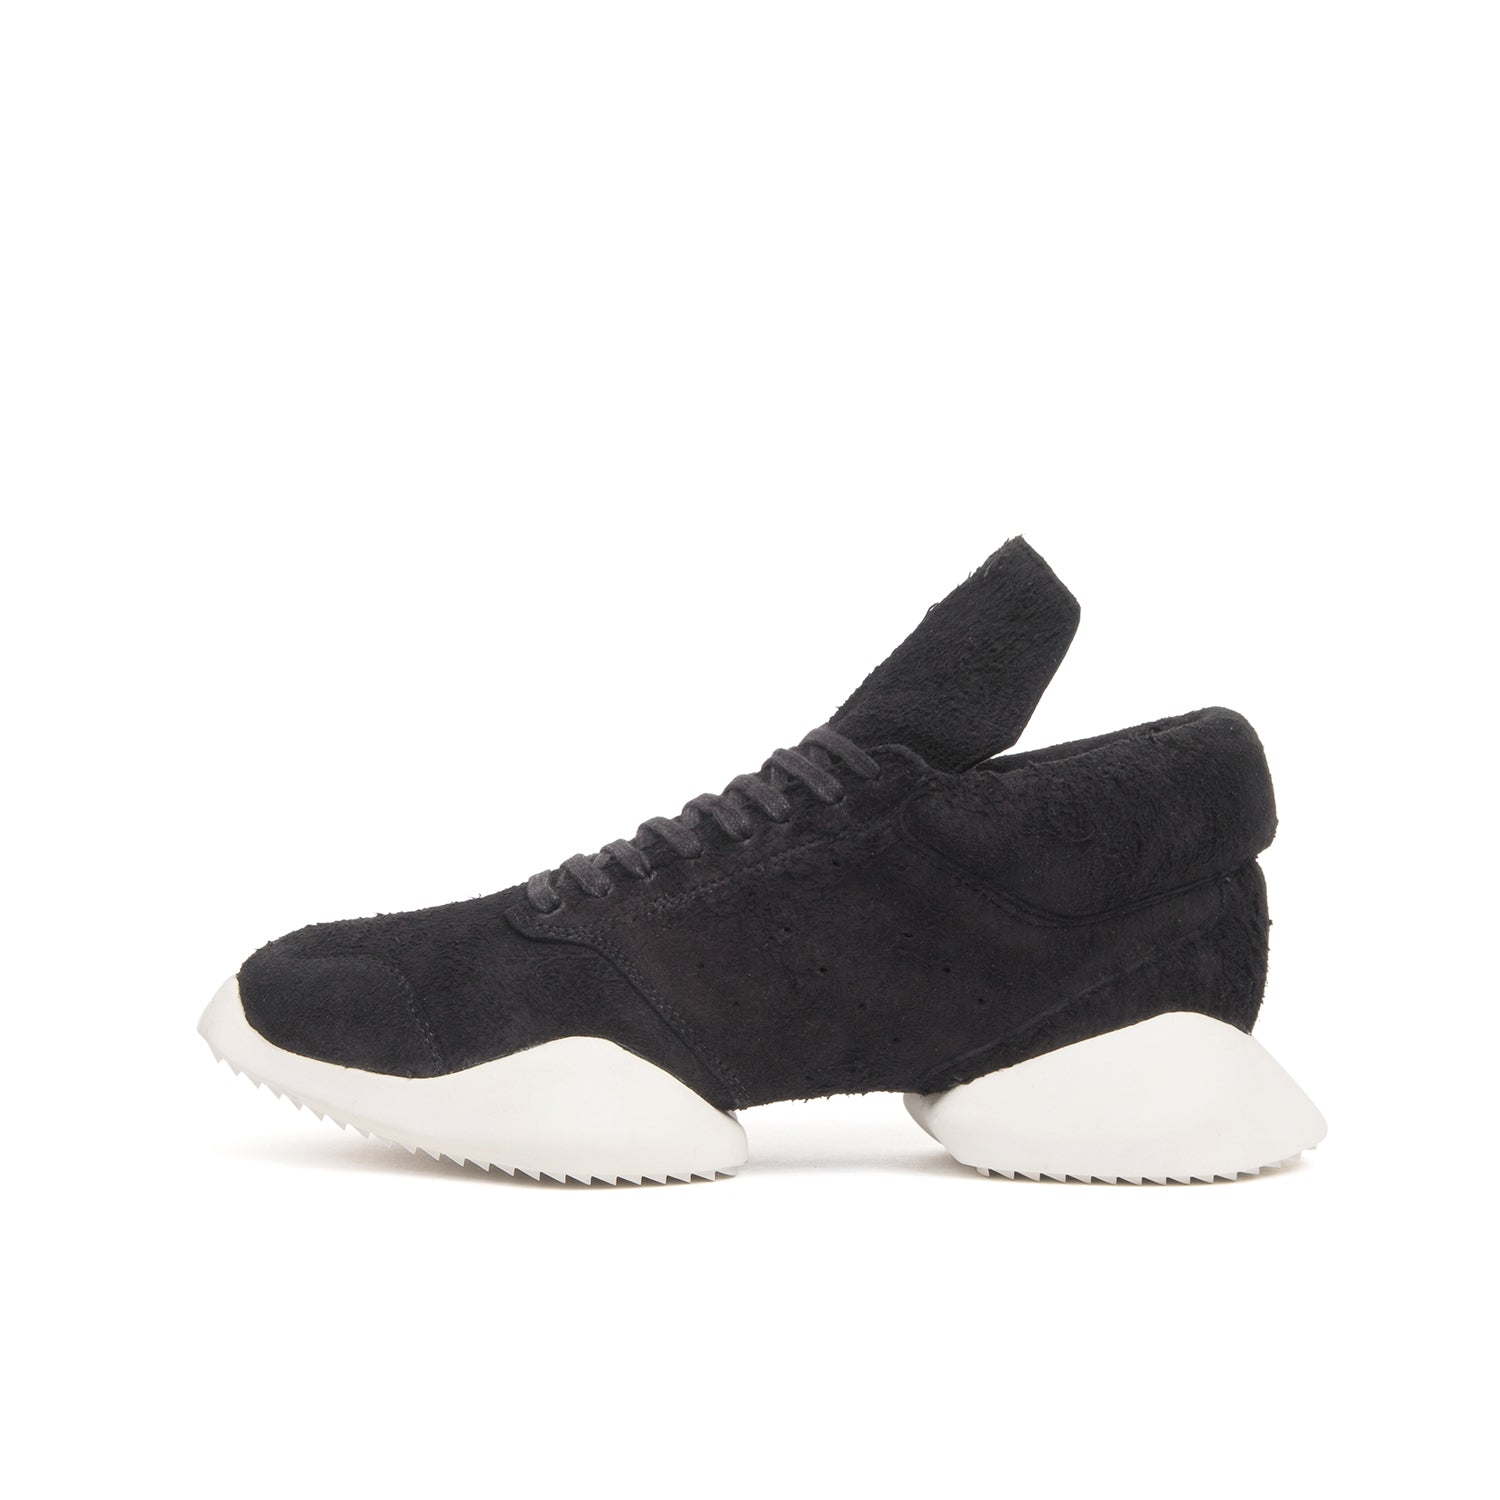 3812fe947 adidas x Rick Owens RO Runner Soft Black Leather/Milk